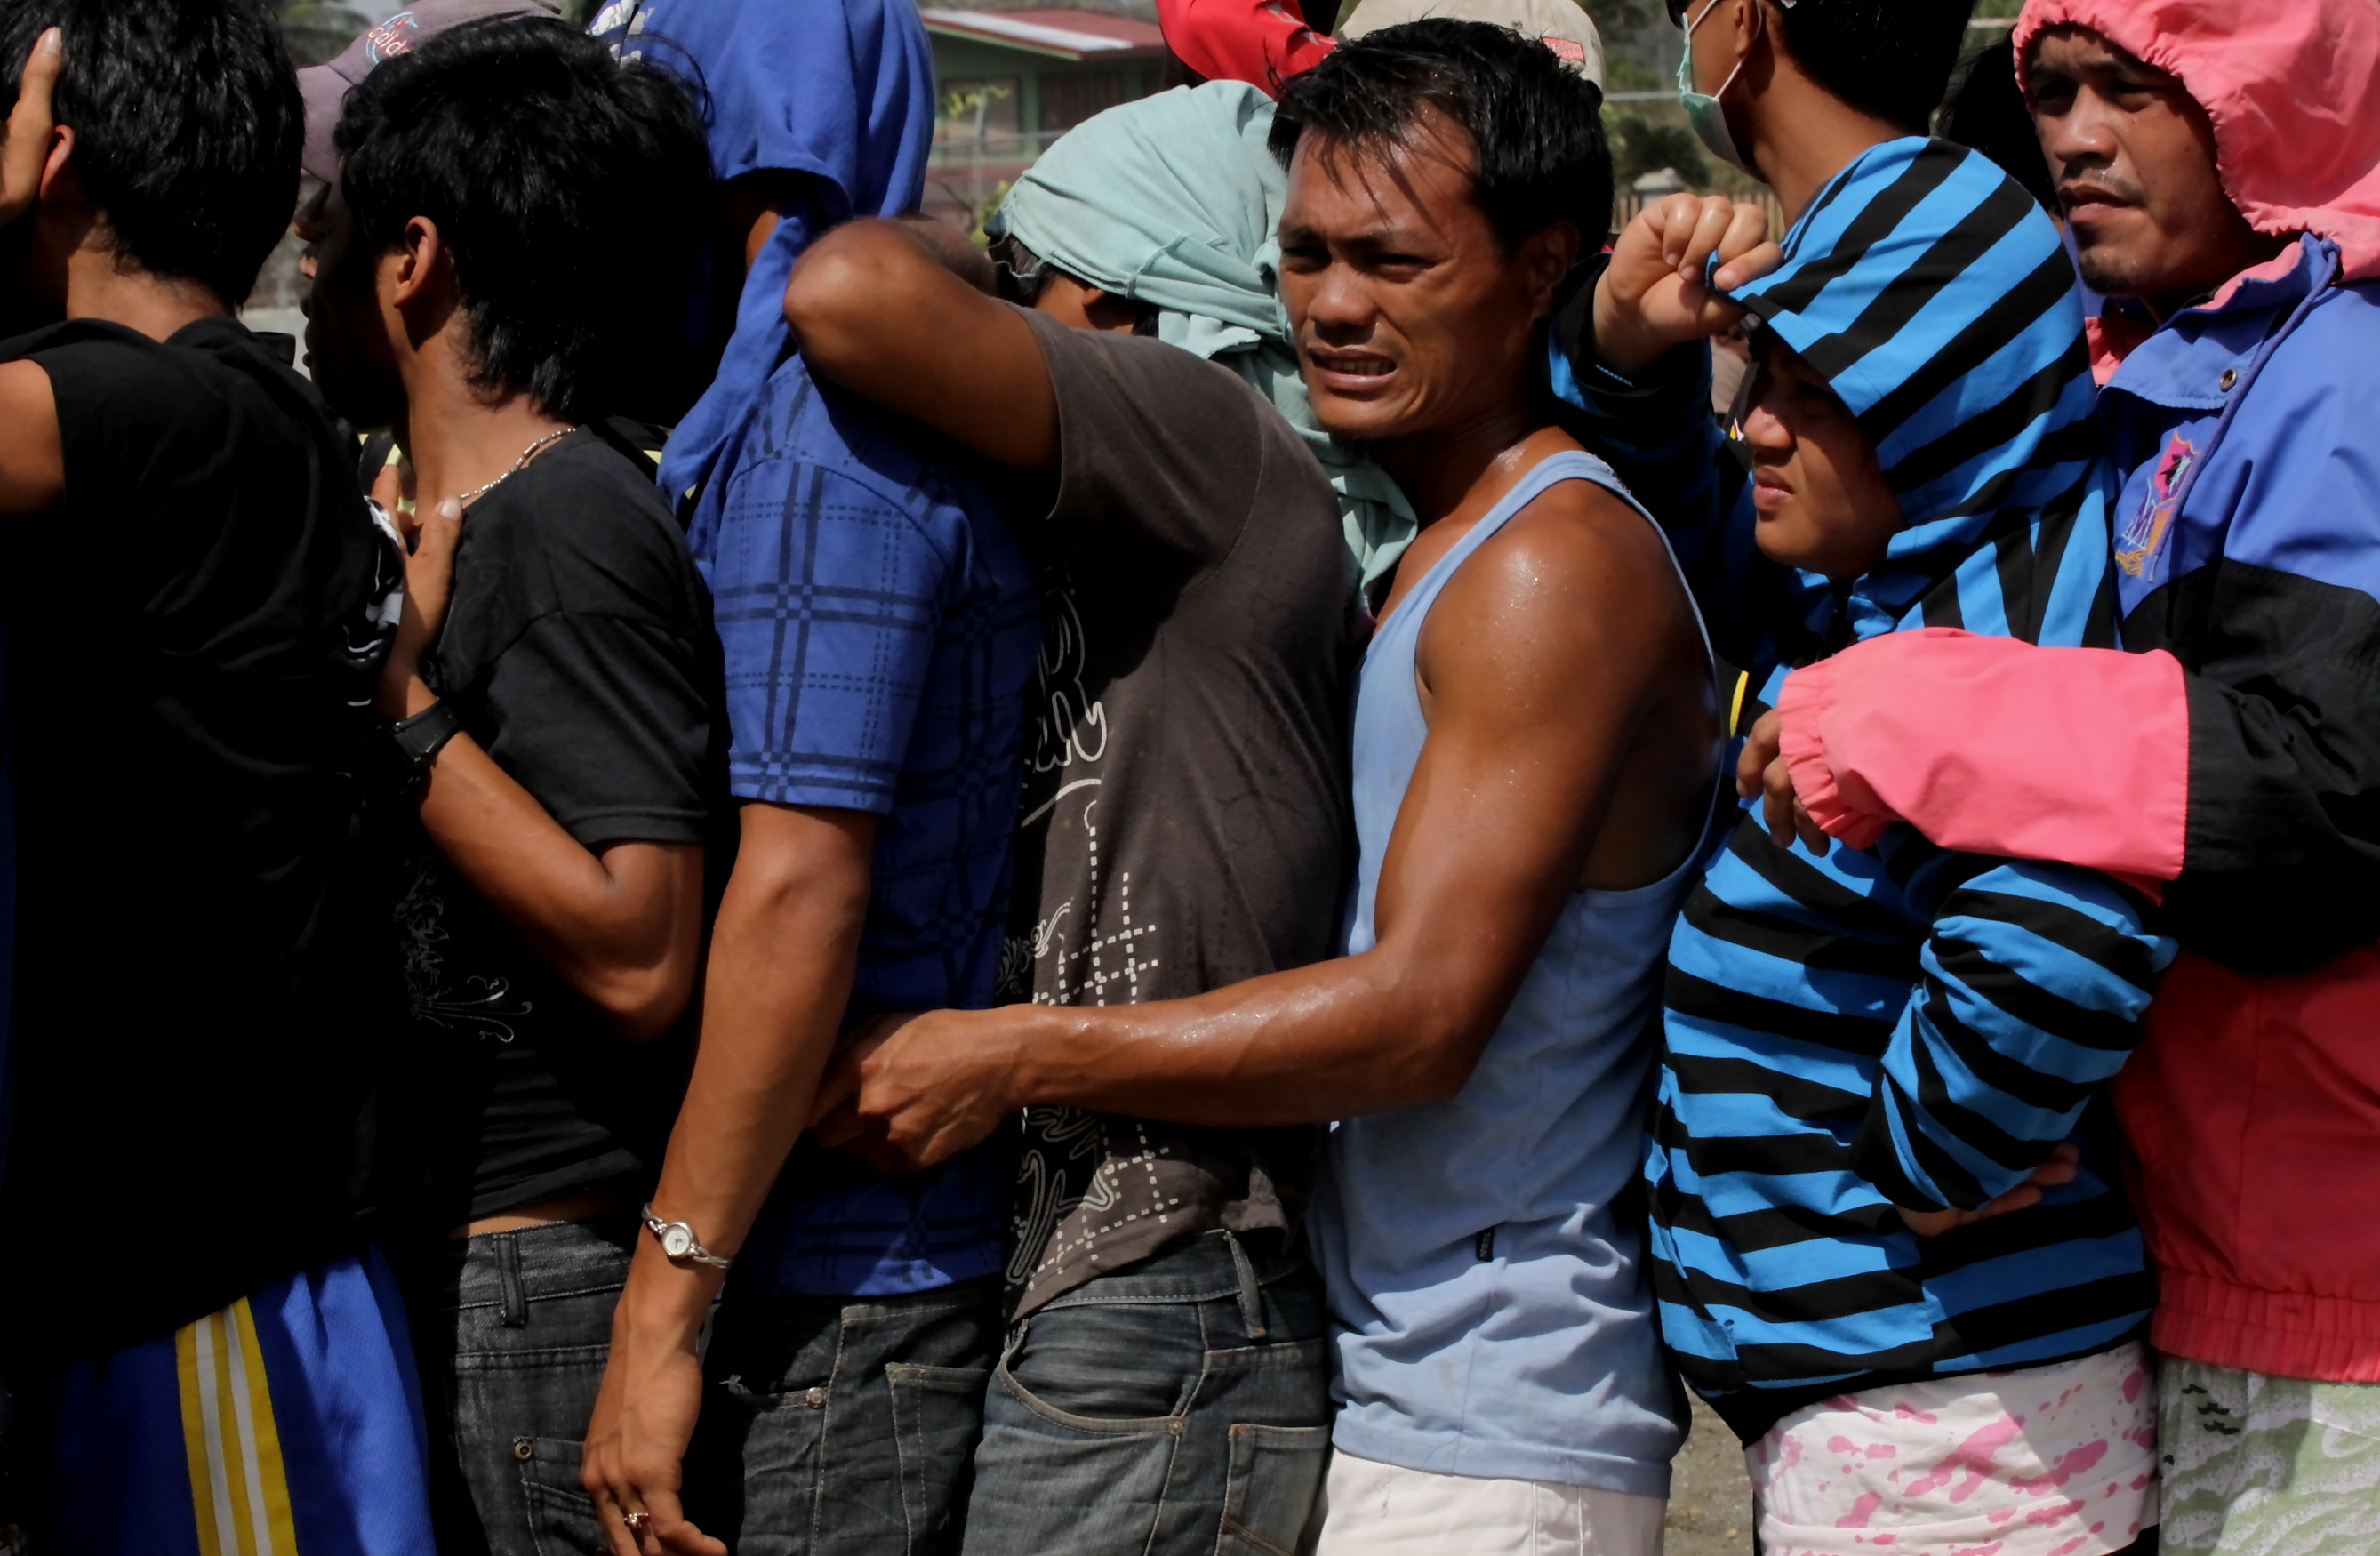 Compostela Valley, Philippines - Men crowd each other as they queue for food relief in a southern Philippine ravaged by typhoon Bopha